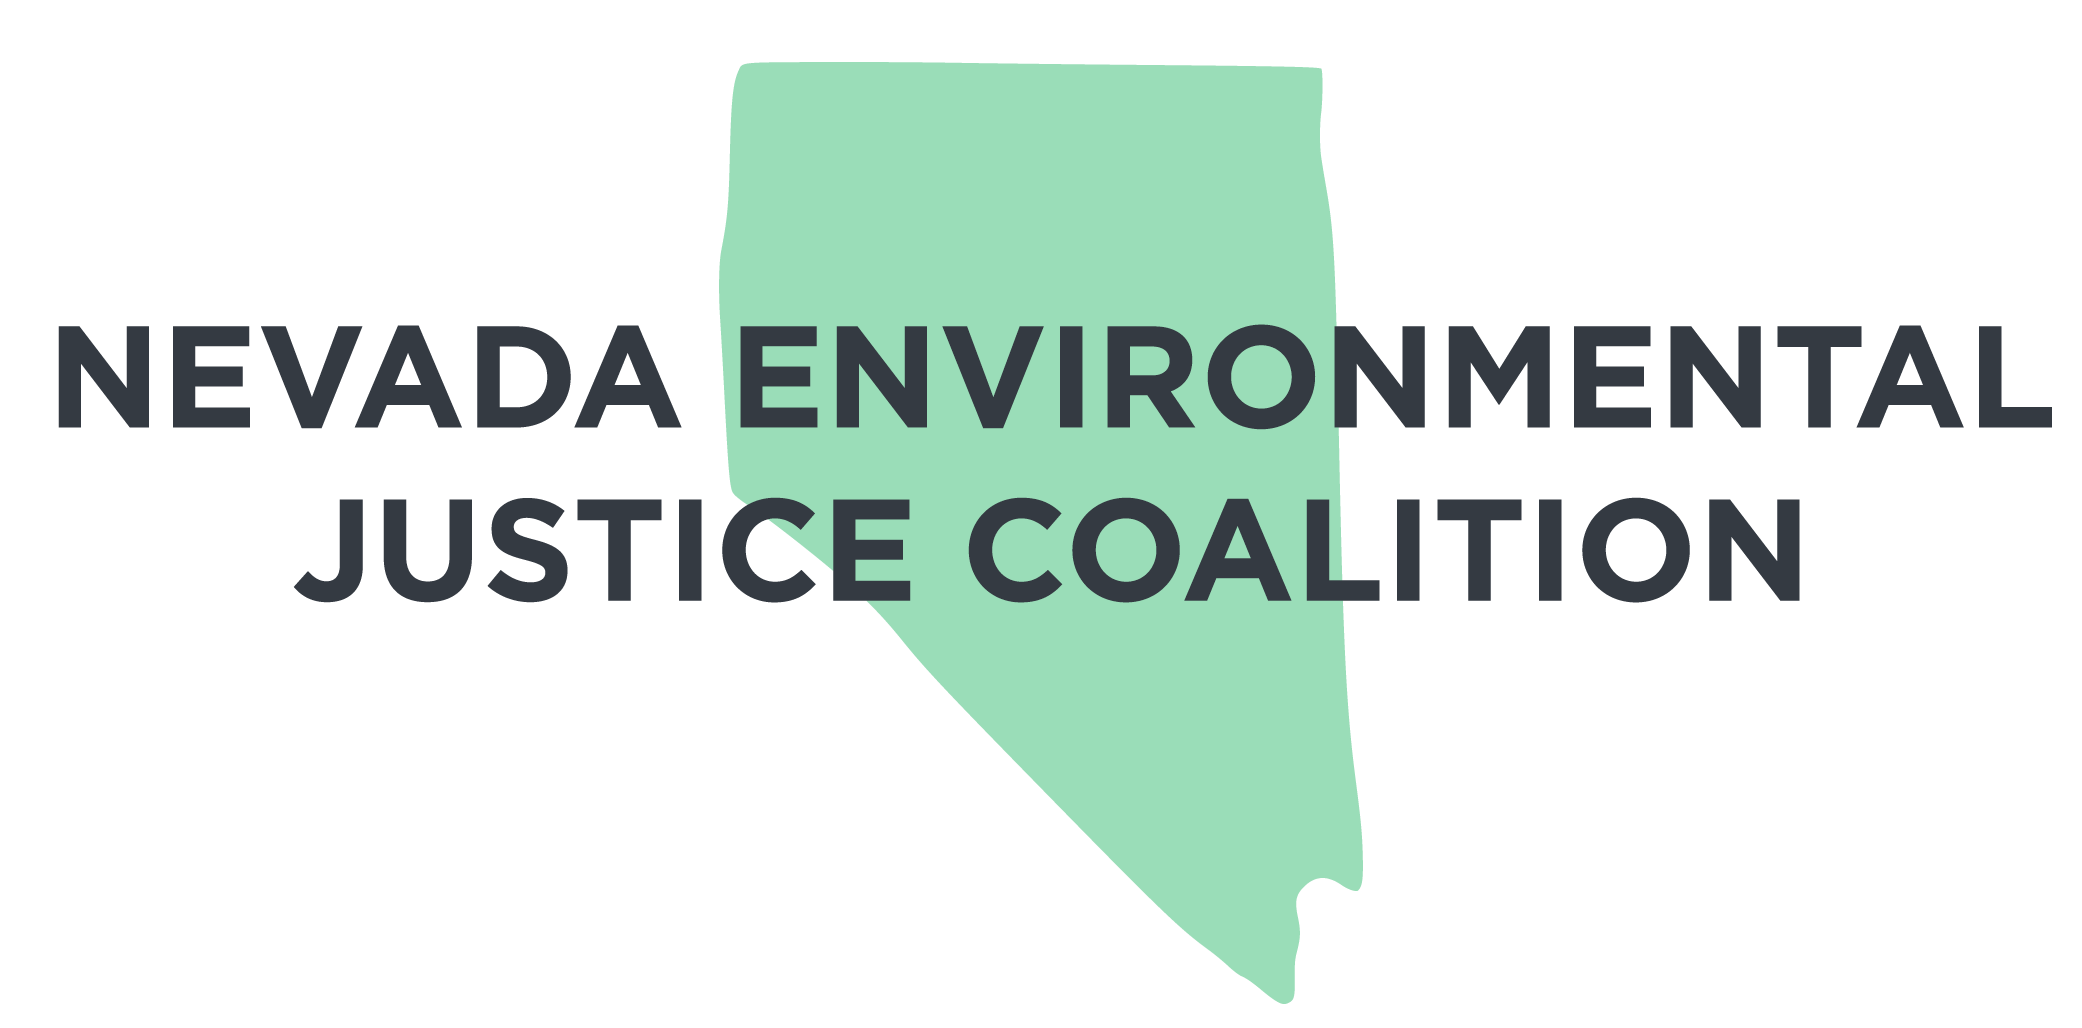 Nevada Environmental Justice Coalition